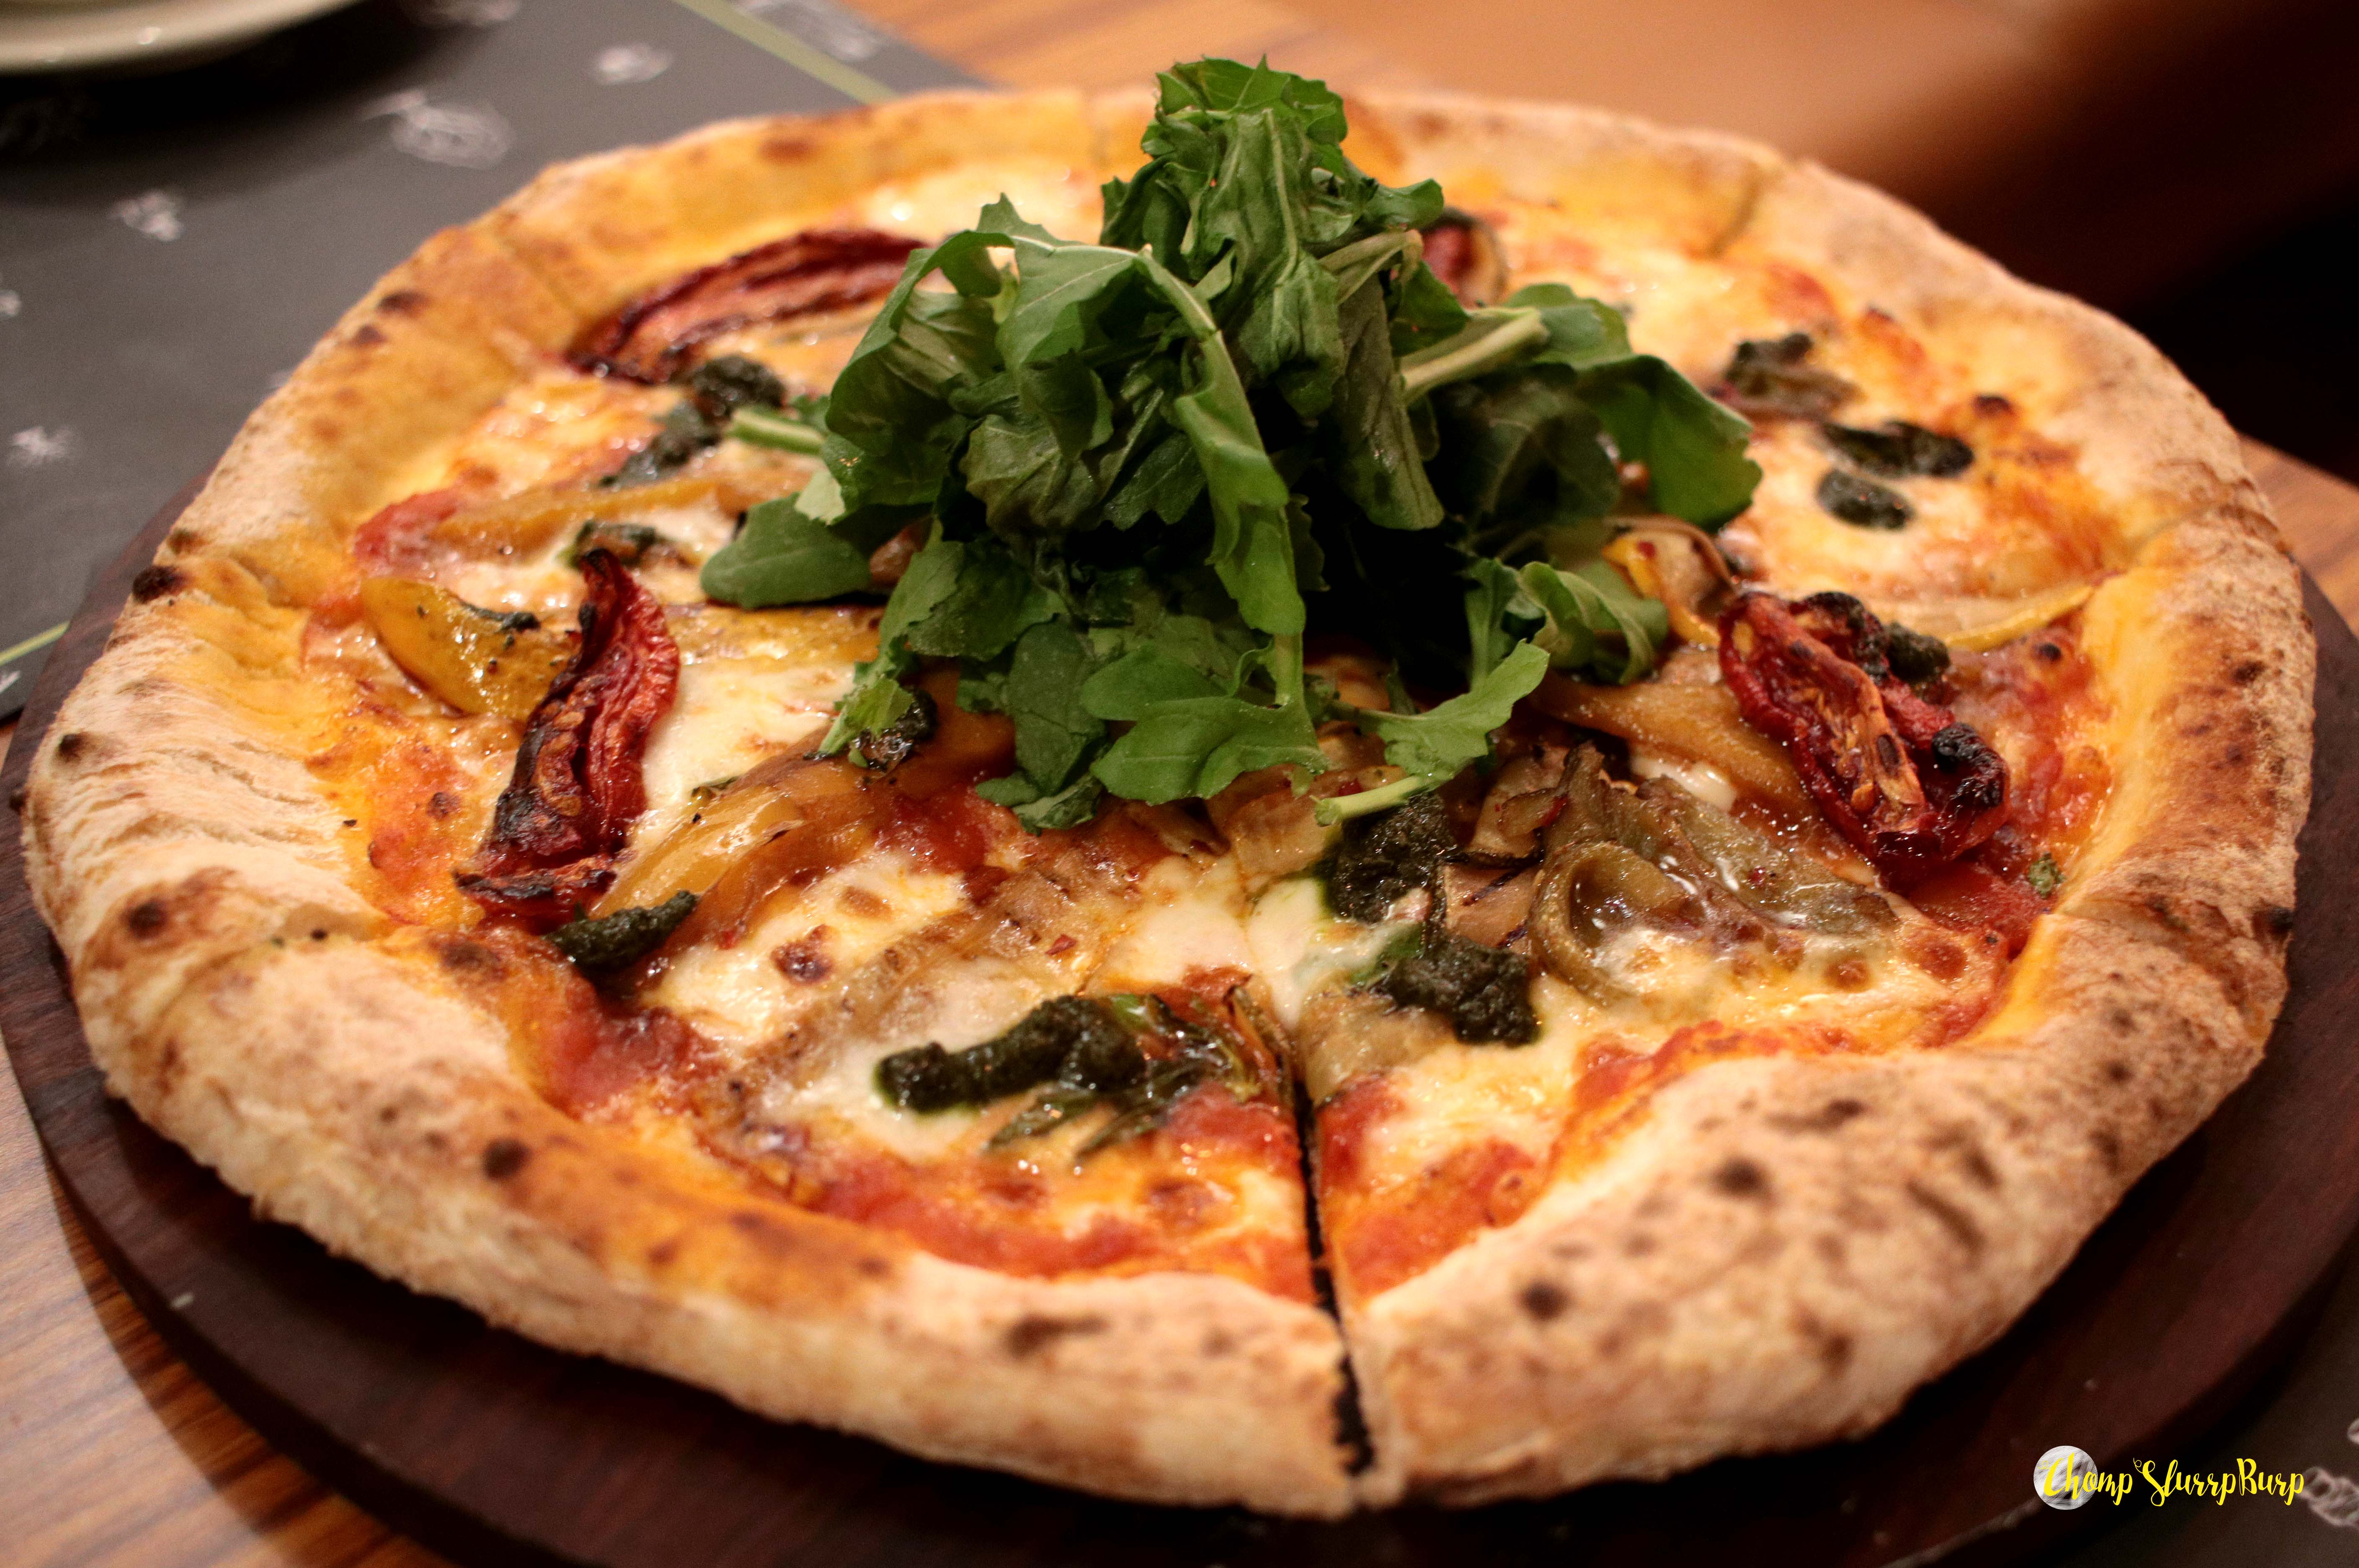 Pizza at Evoo